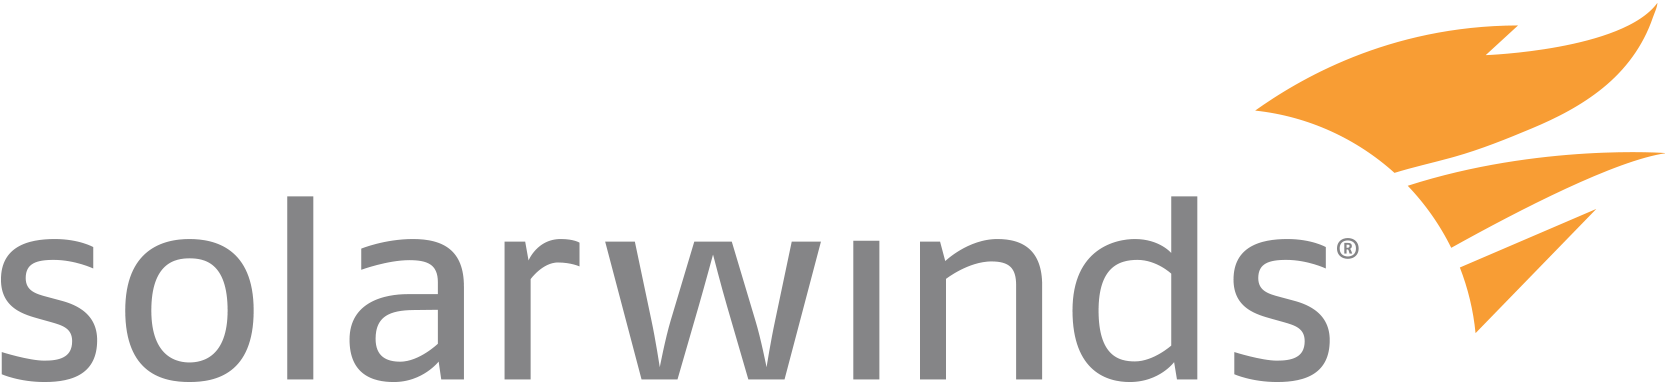 Solarwinds-Partner-Logo.png